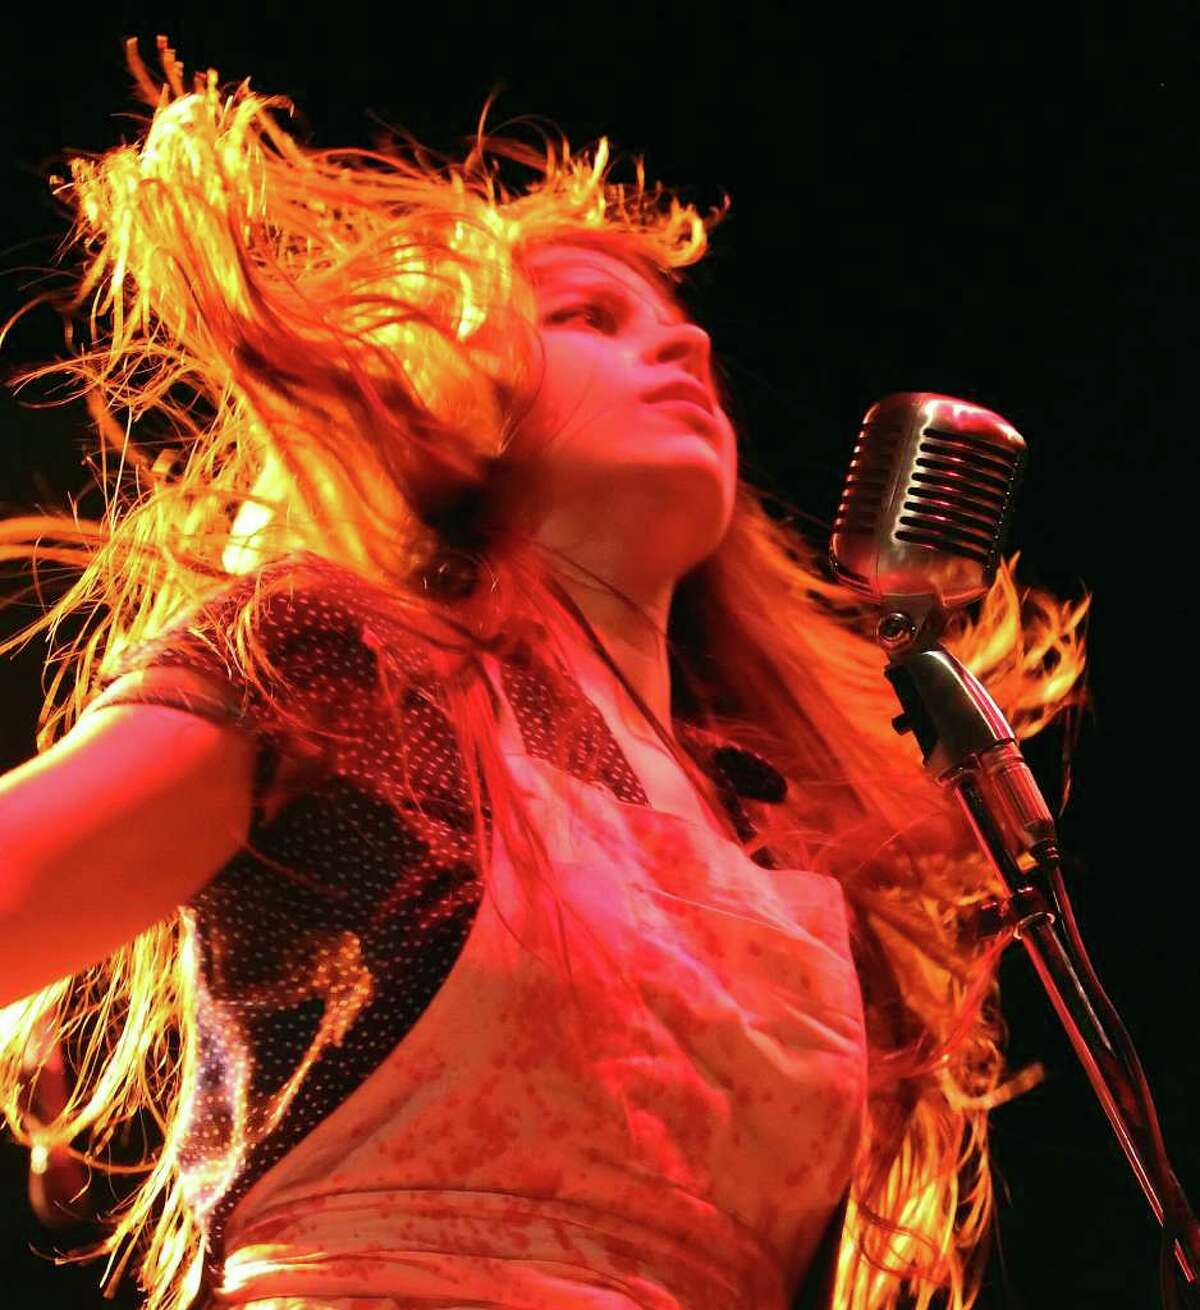 Le Butcherettes perform at AT&T Center on Friday, June 3, 2011. The band consists of Teri Gender Bender (pictured) on lead vocals, guitar and keyboard; Jonathan Hischke on bass and Gabe Serbian on drums. Kin Man Hui/kmhui@express-news.net